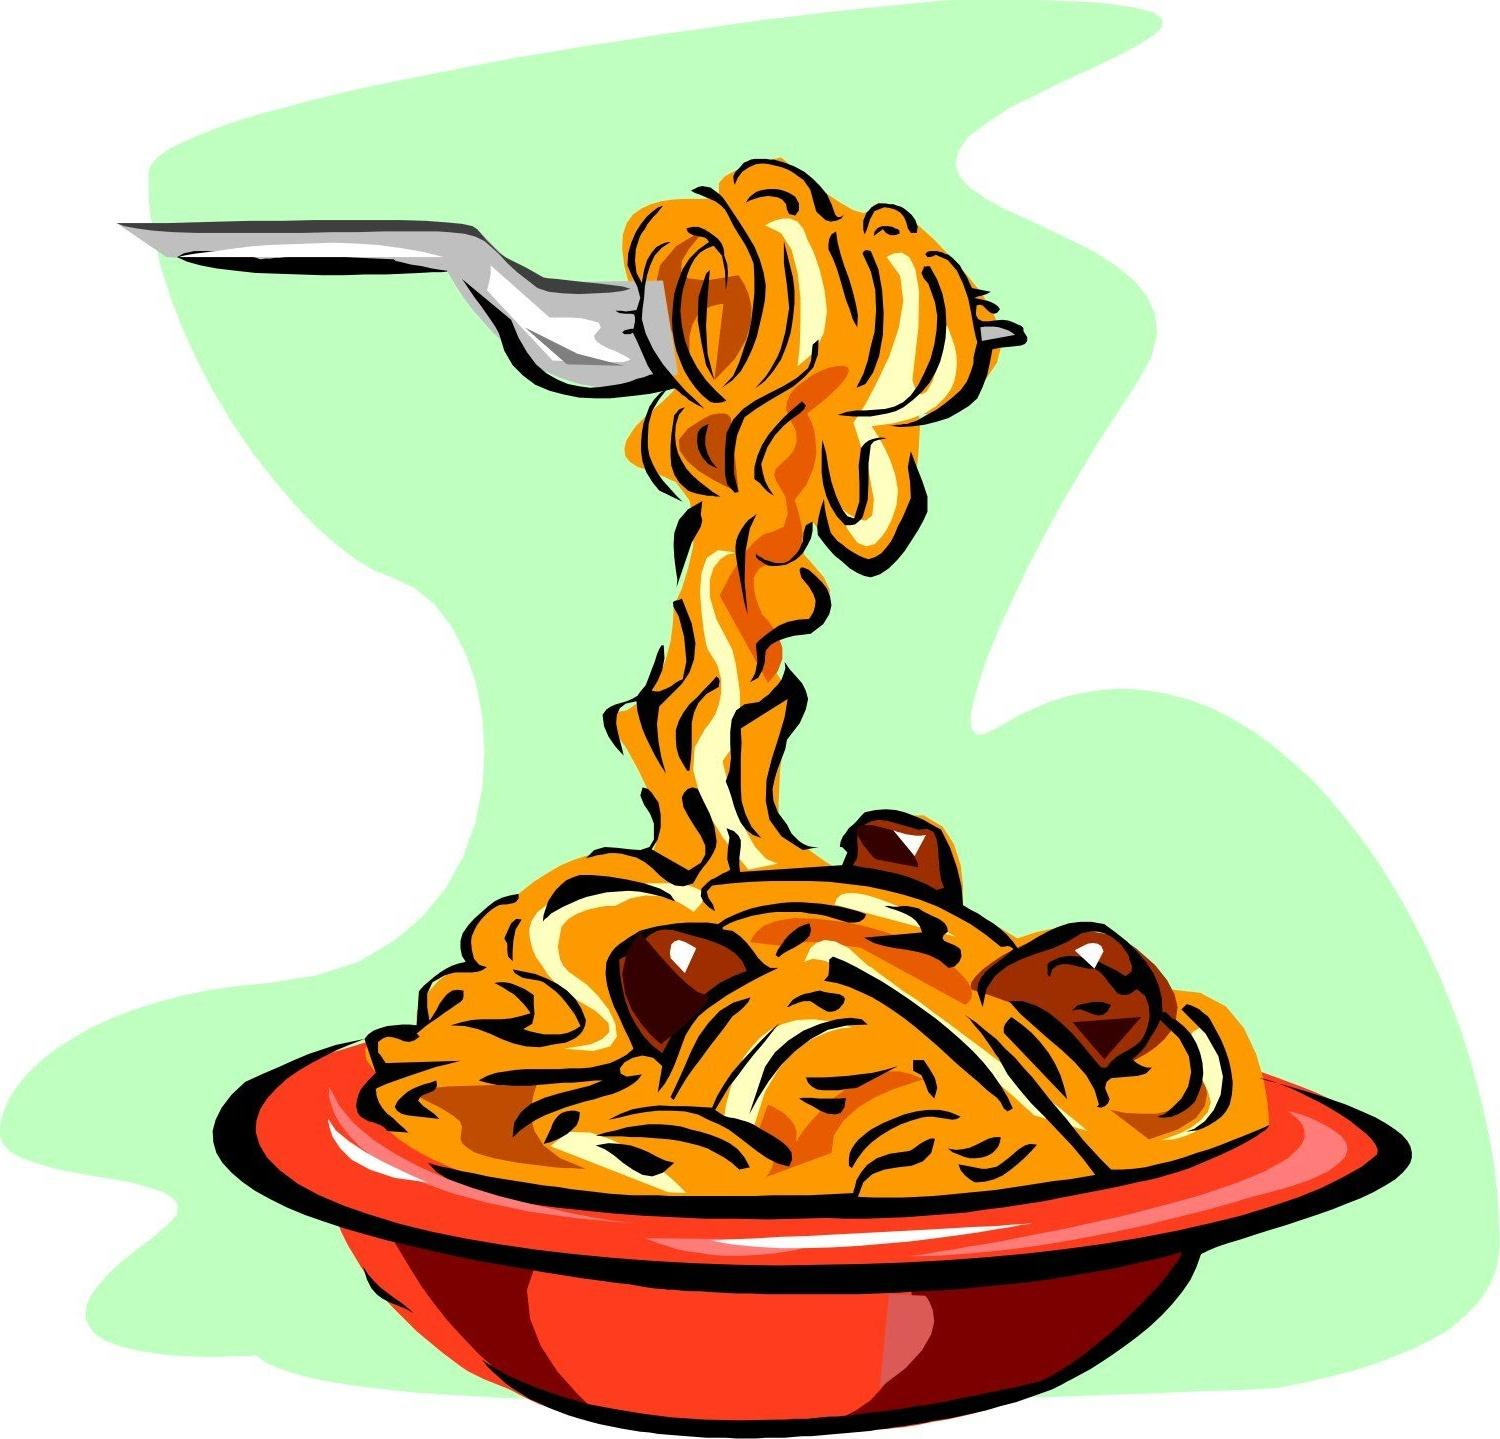 Meatball clipart had Best Free Image And